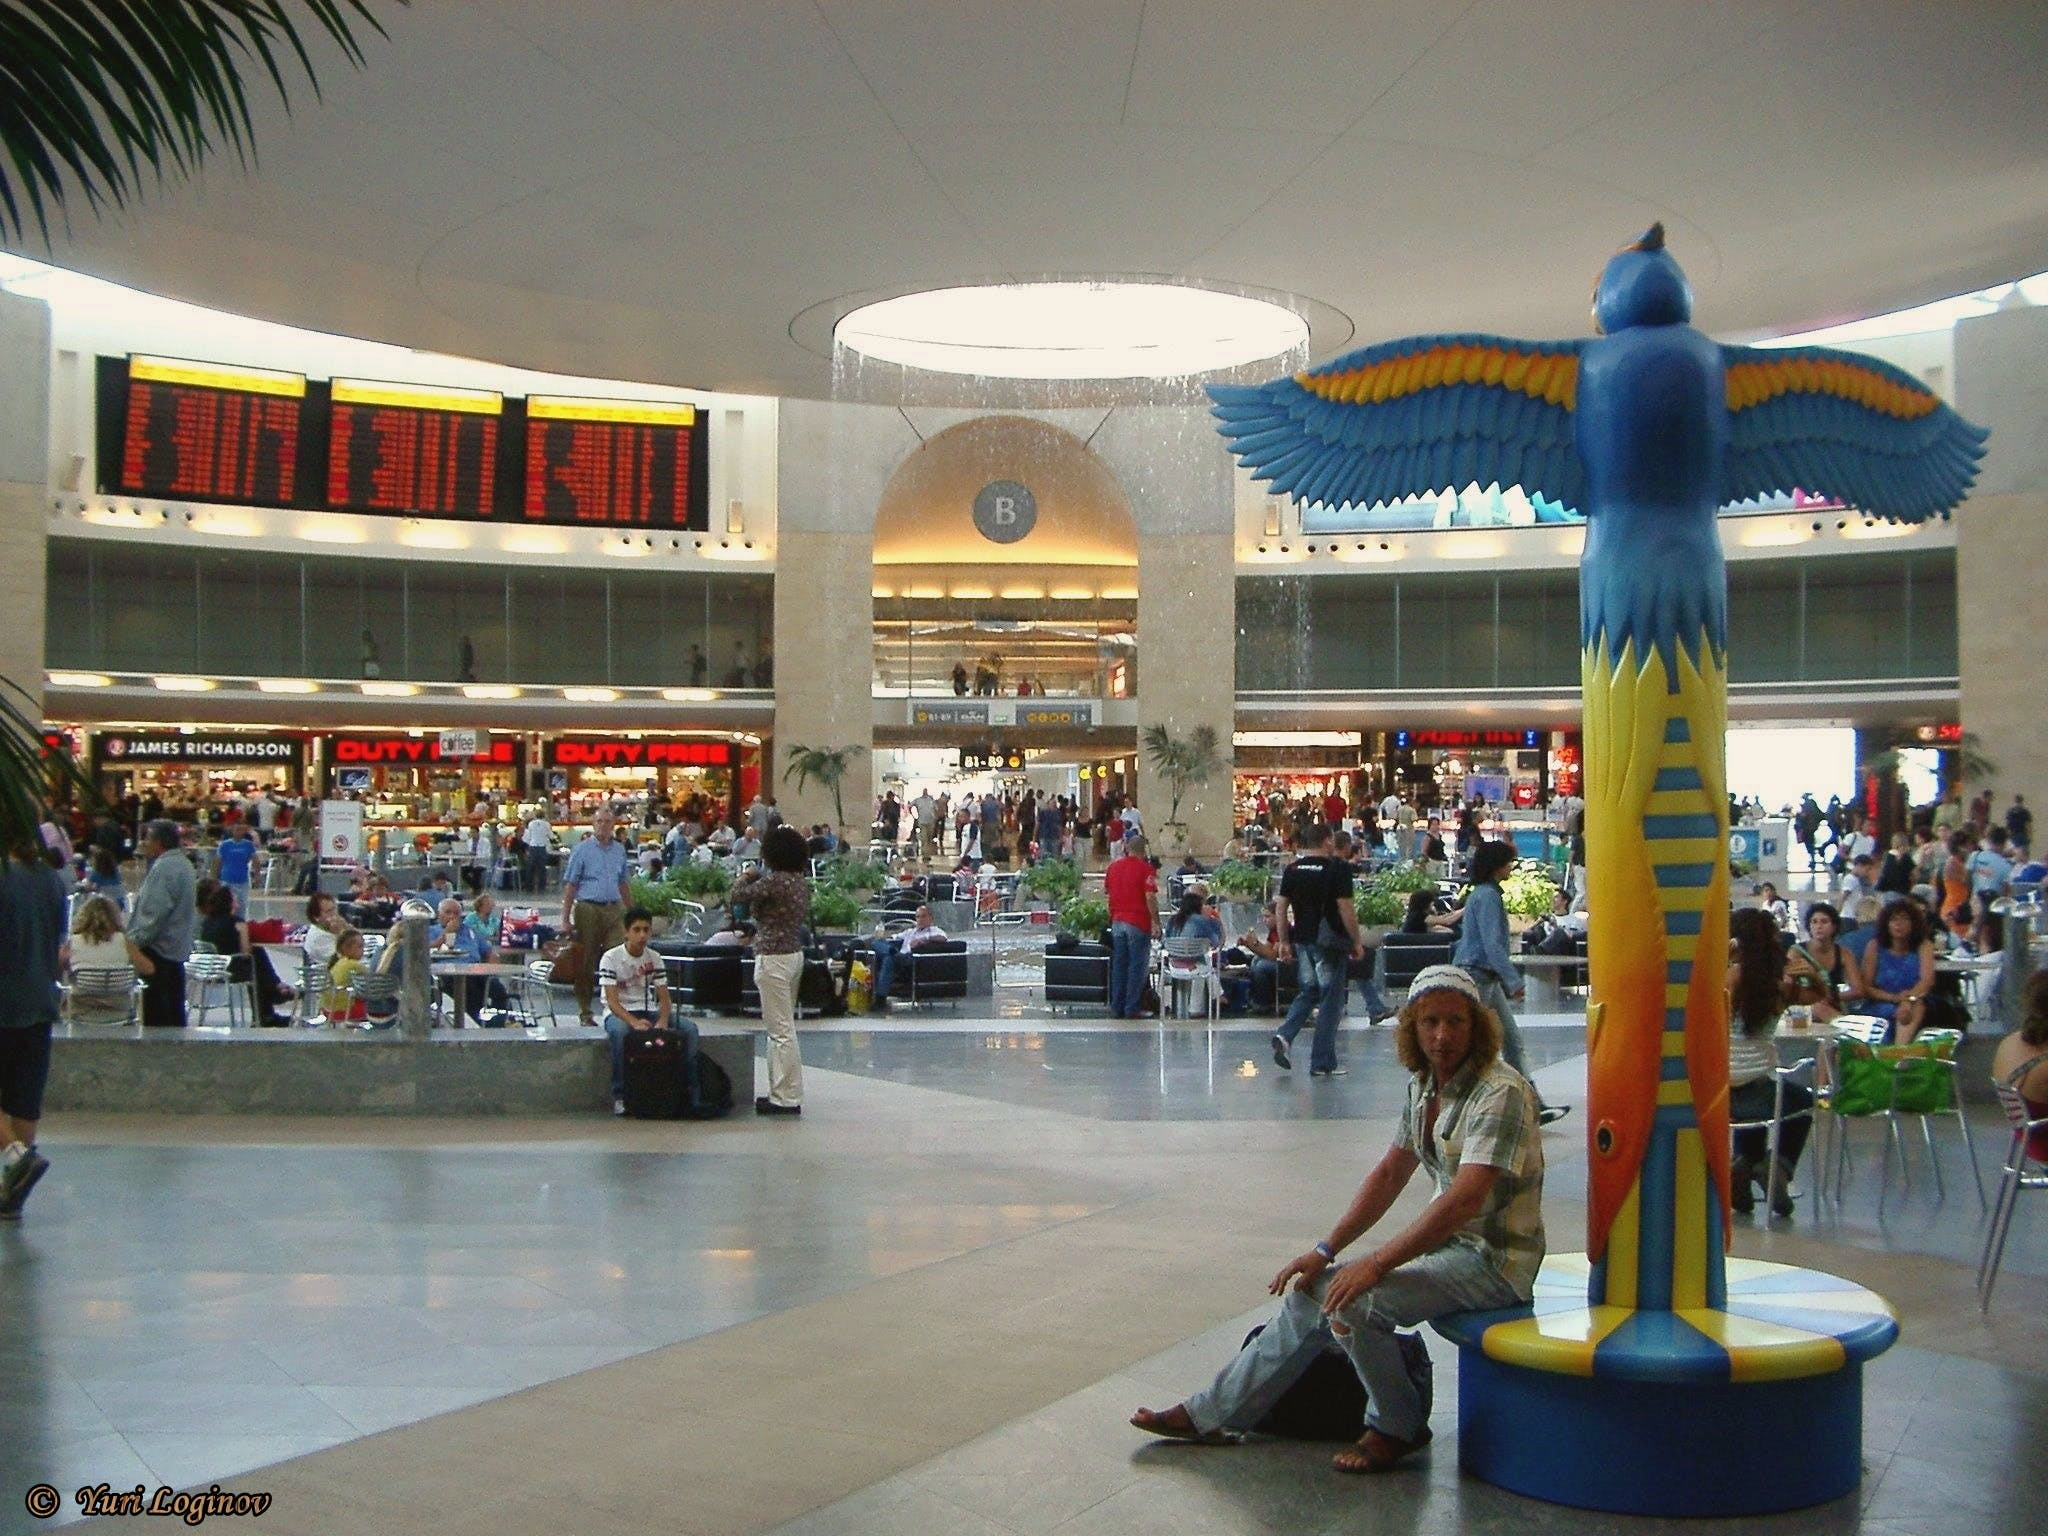 Free stock photo of Israel, Ben Gurion airport